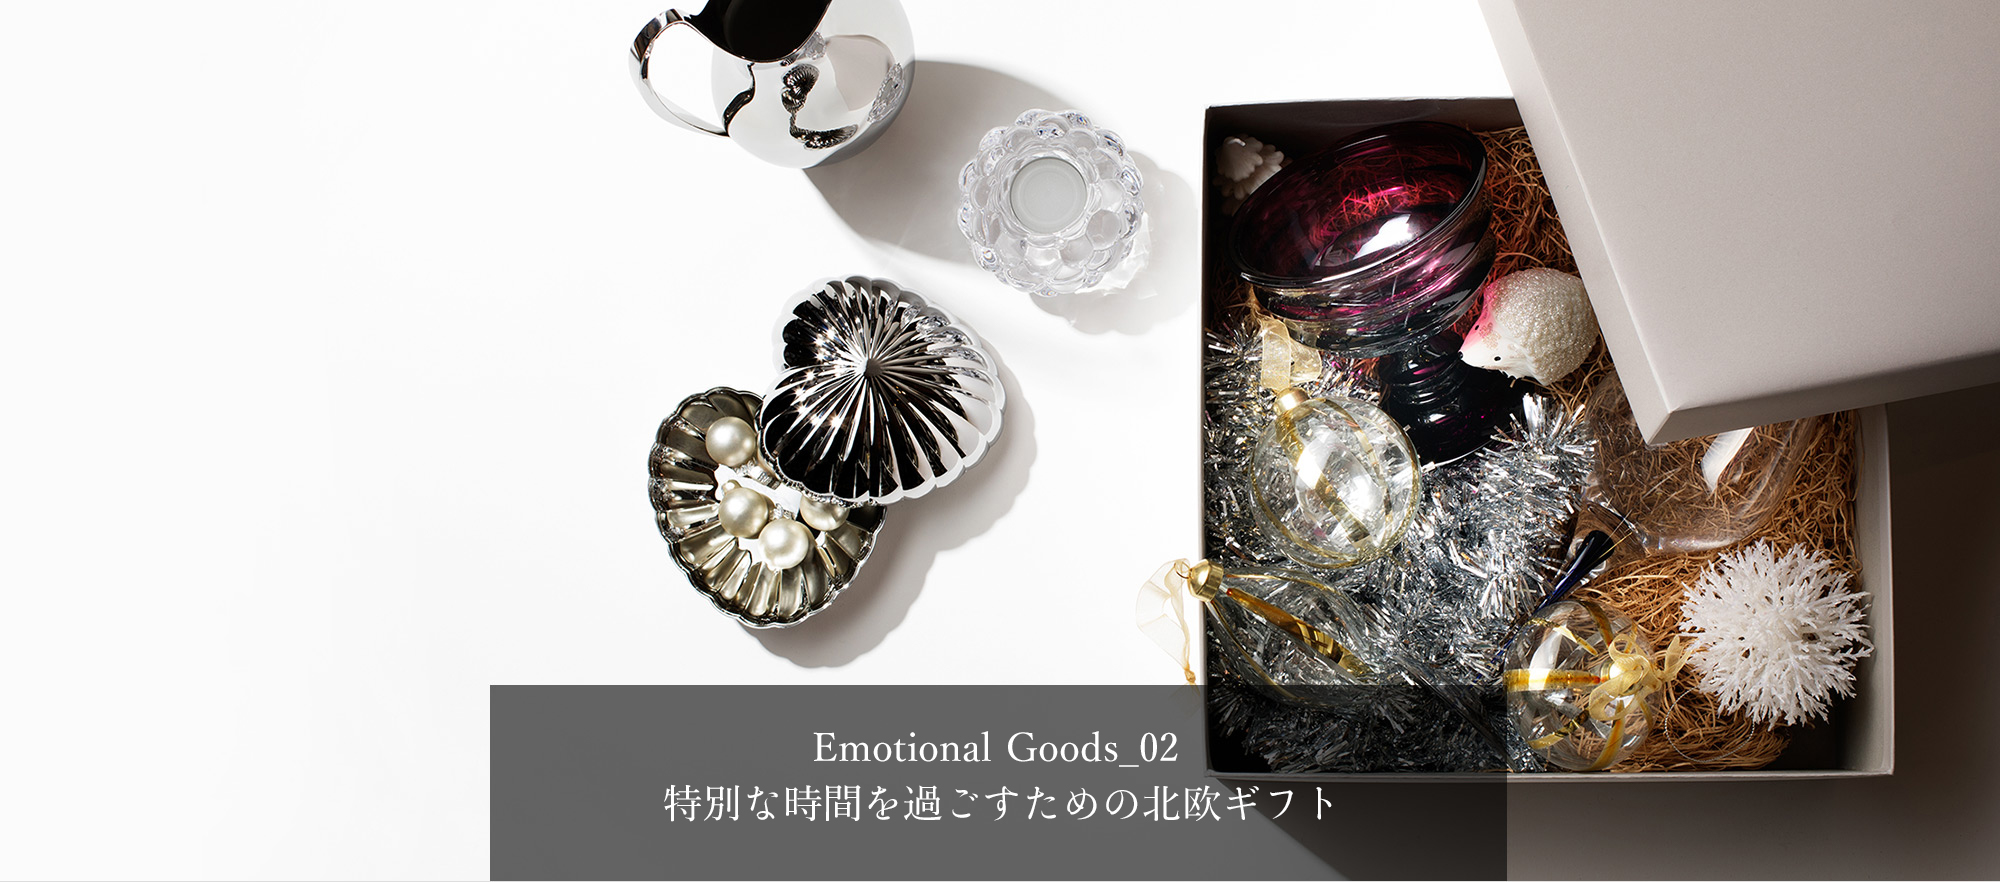 Emotional Goods_02